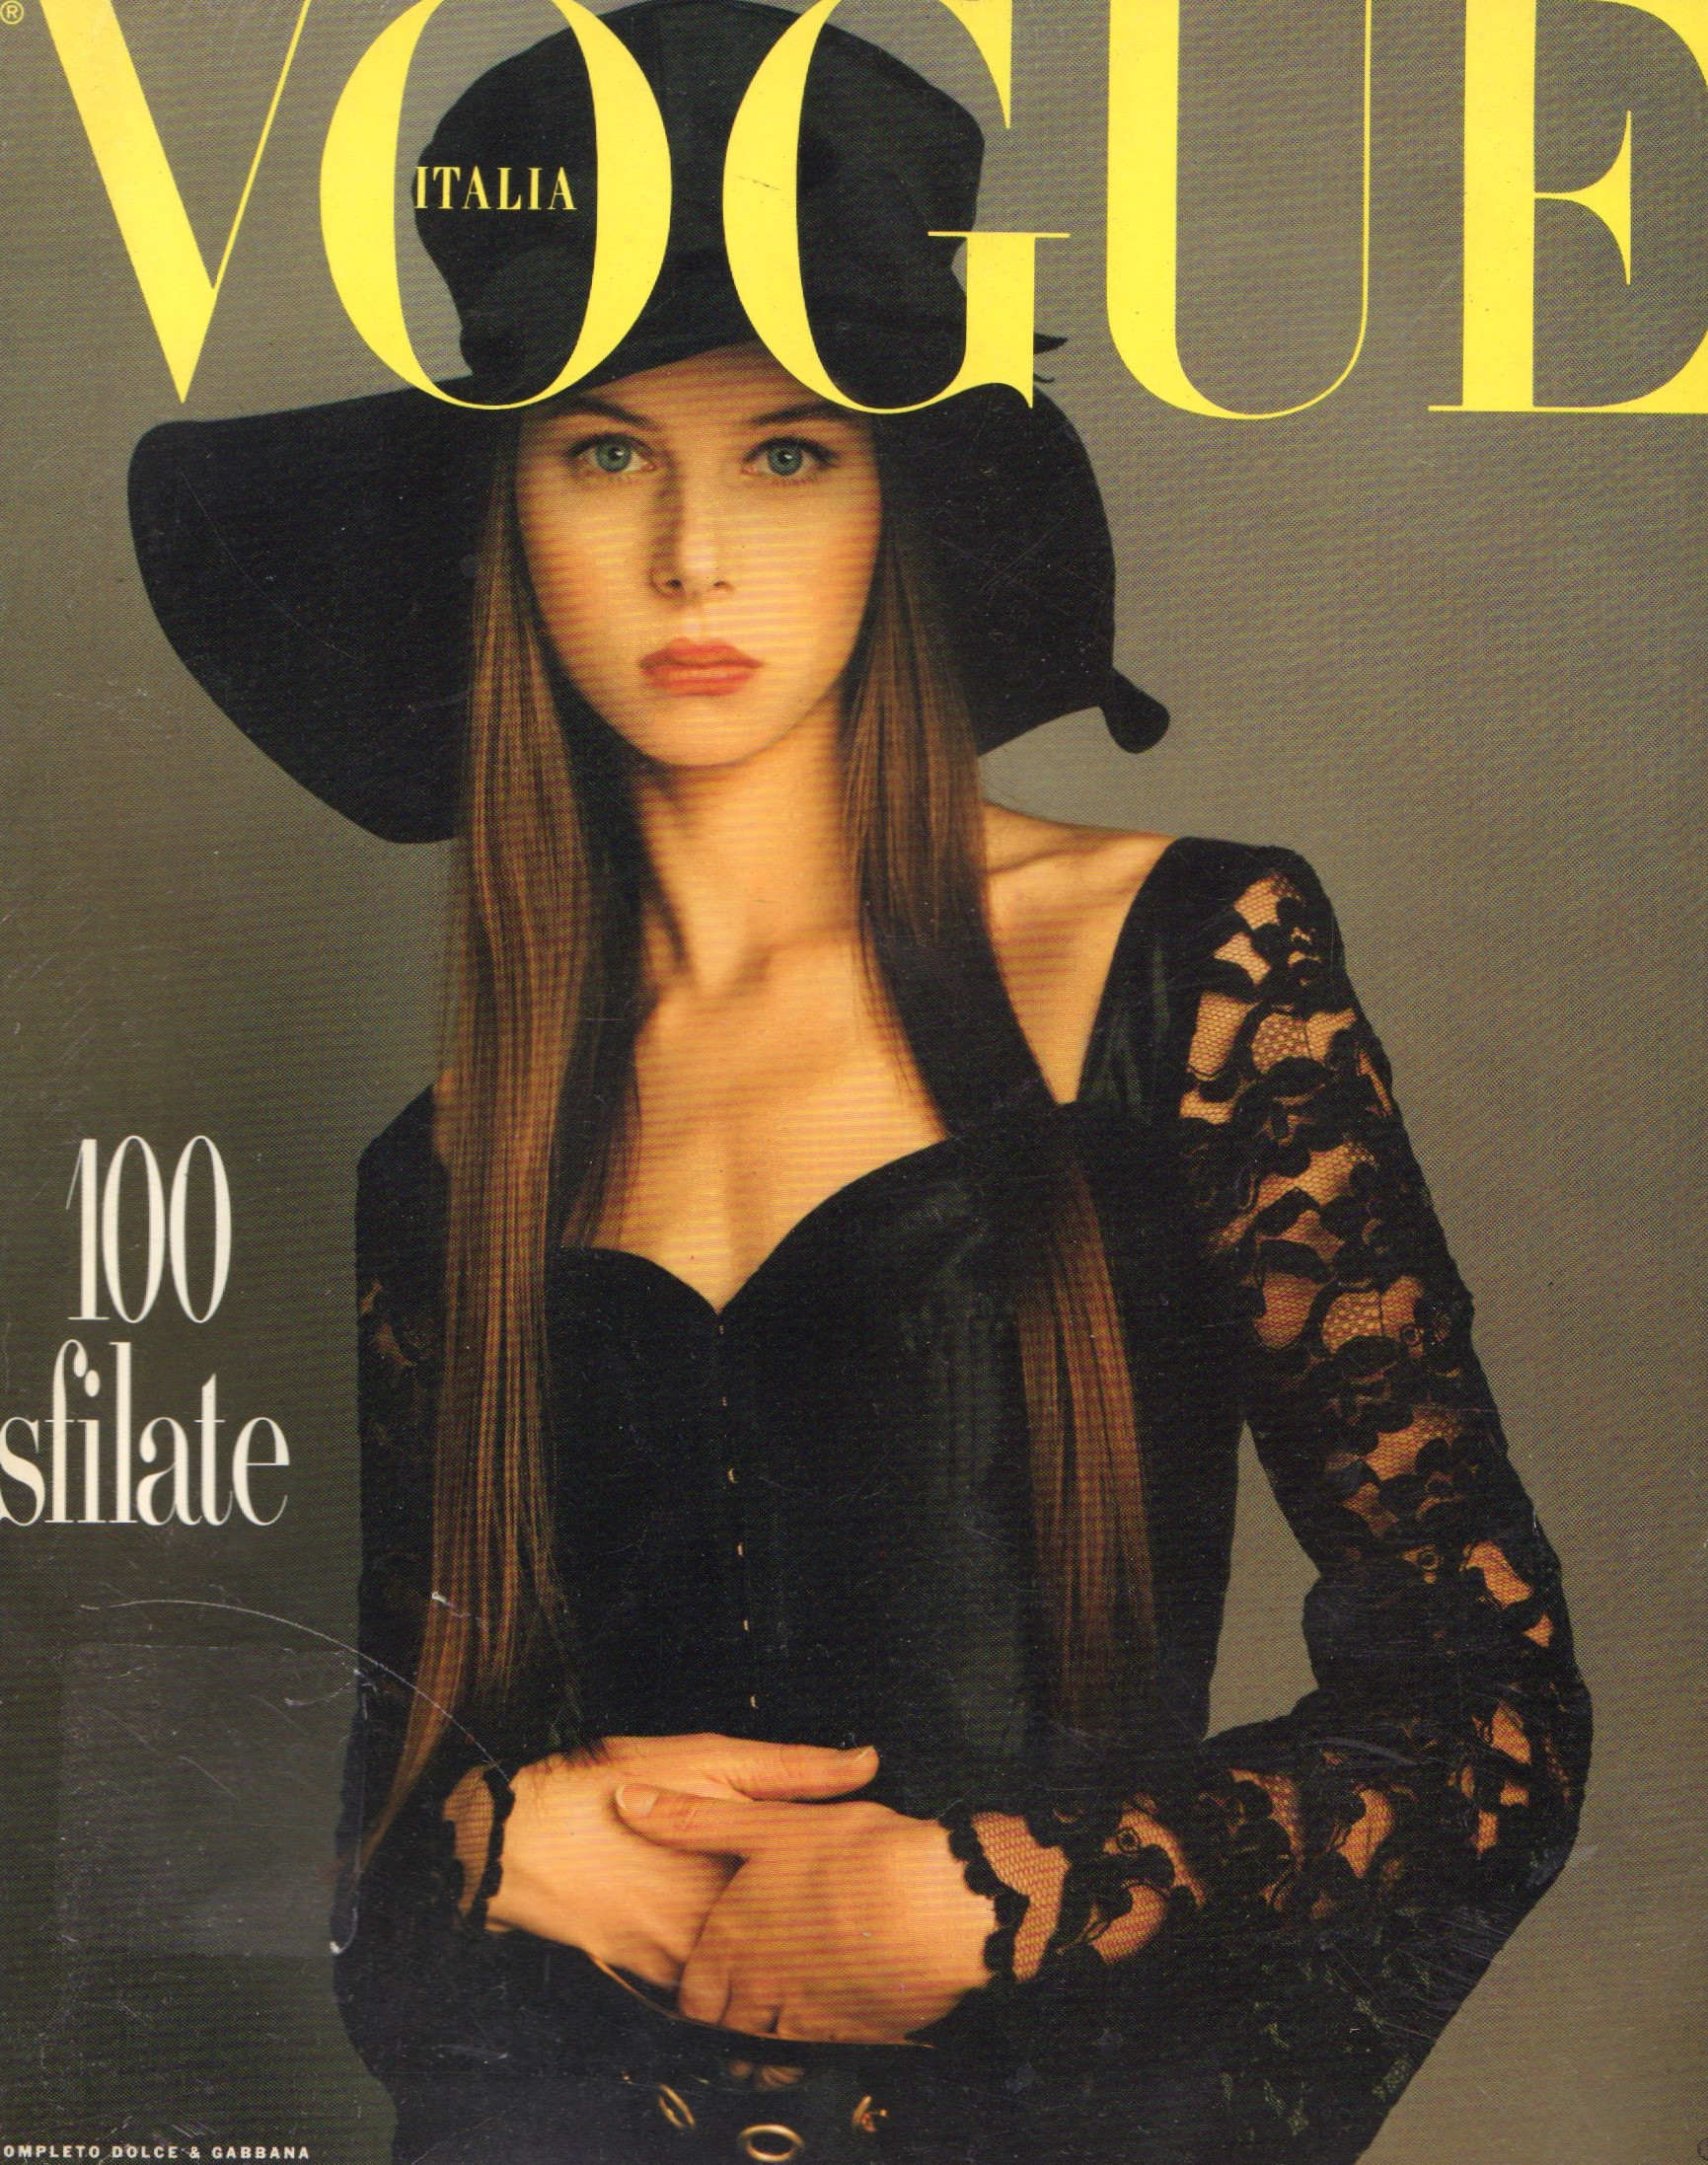 Image for Vogue Italia- Dossier Sfilate Primavera Estate, Gennaio, January 1993  Italian Vogue- Supplement: Fashion Shows, Spring, January 1993